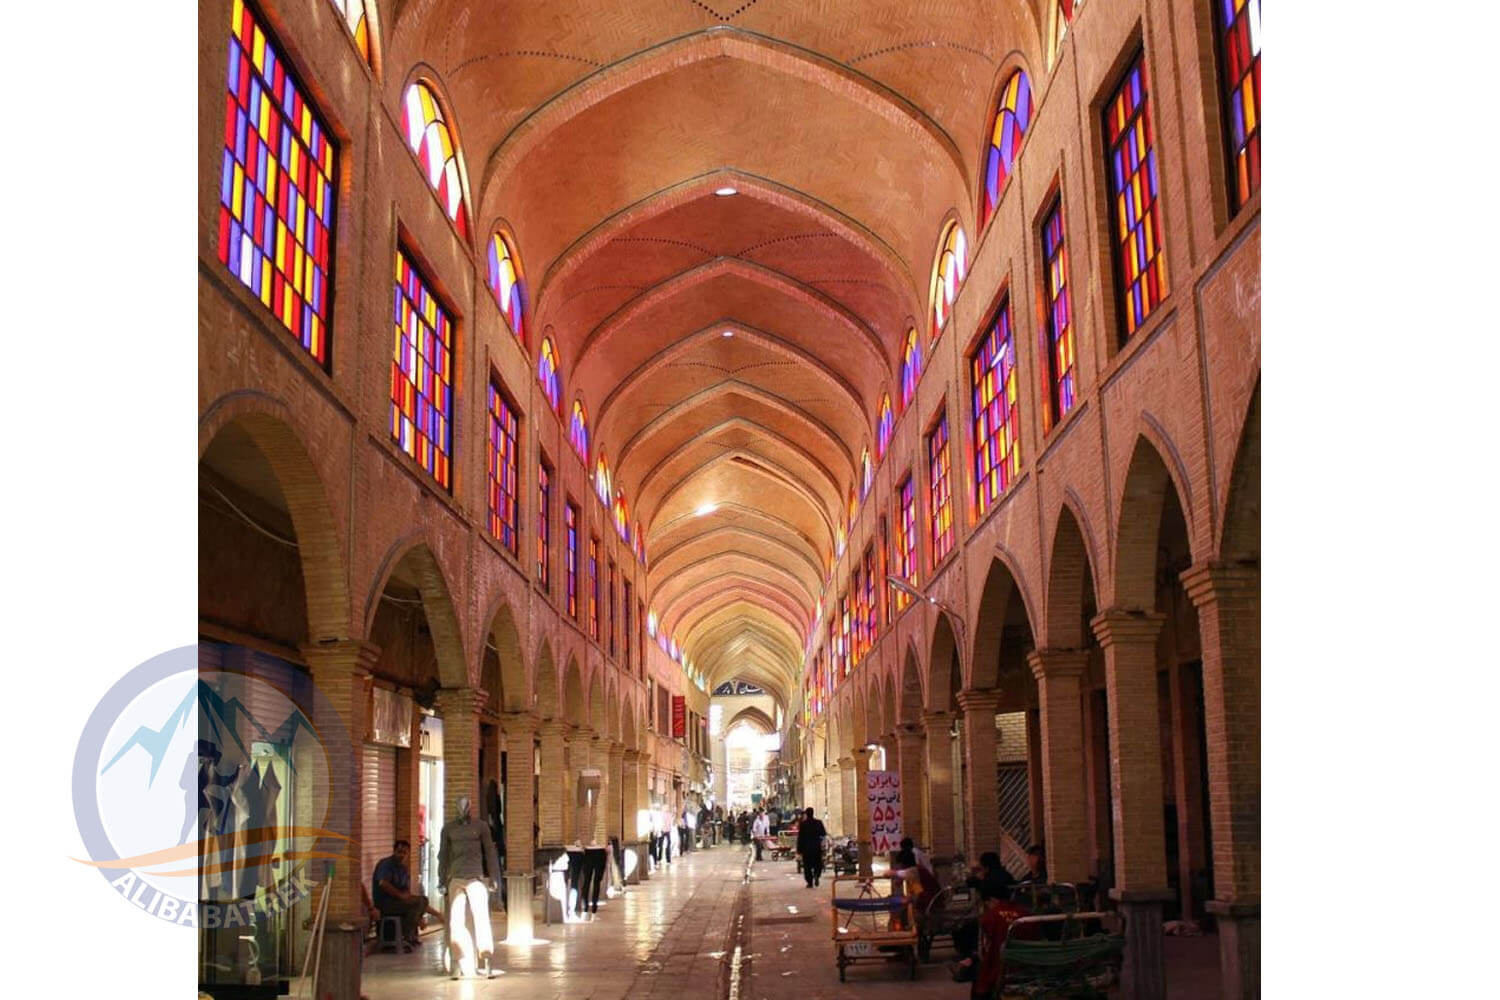 Alibabatrek iran tour packages Tehran day tour Tehran tour Tehran sightseeing tours Grand bazaar2